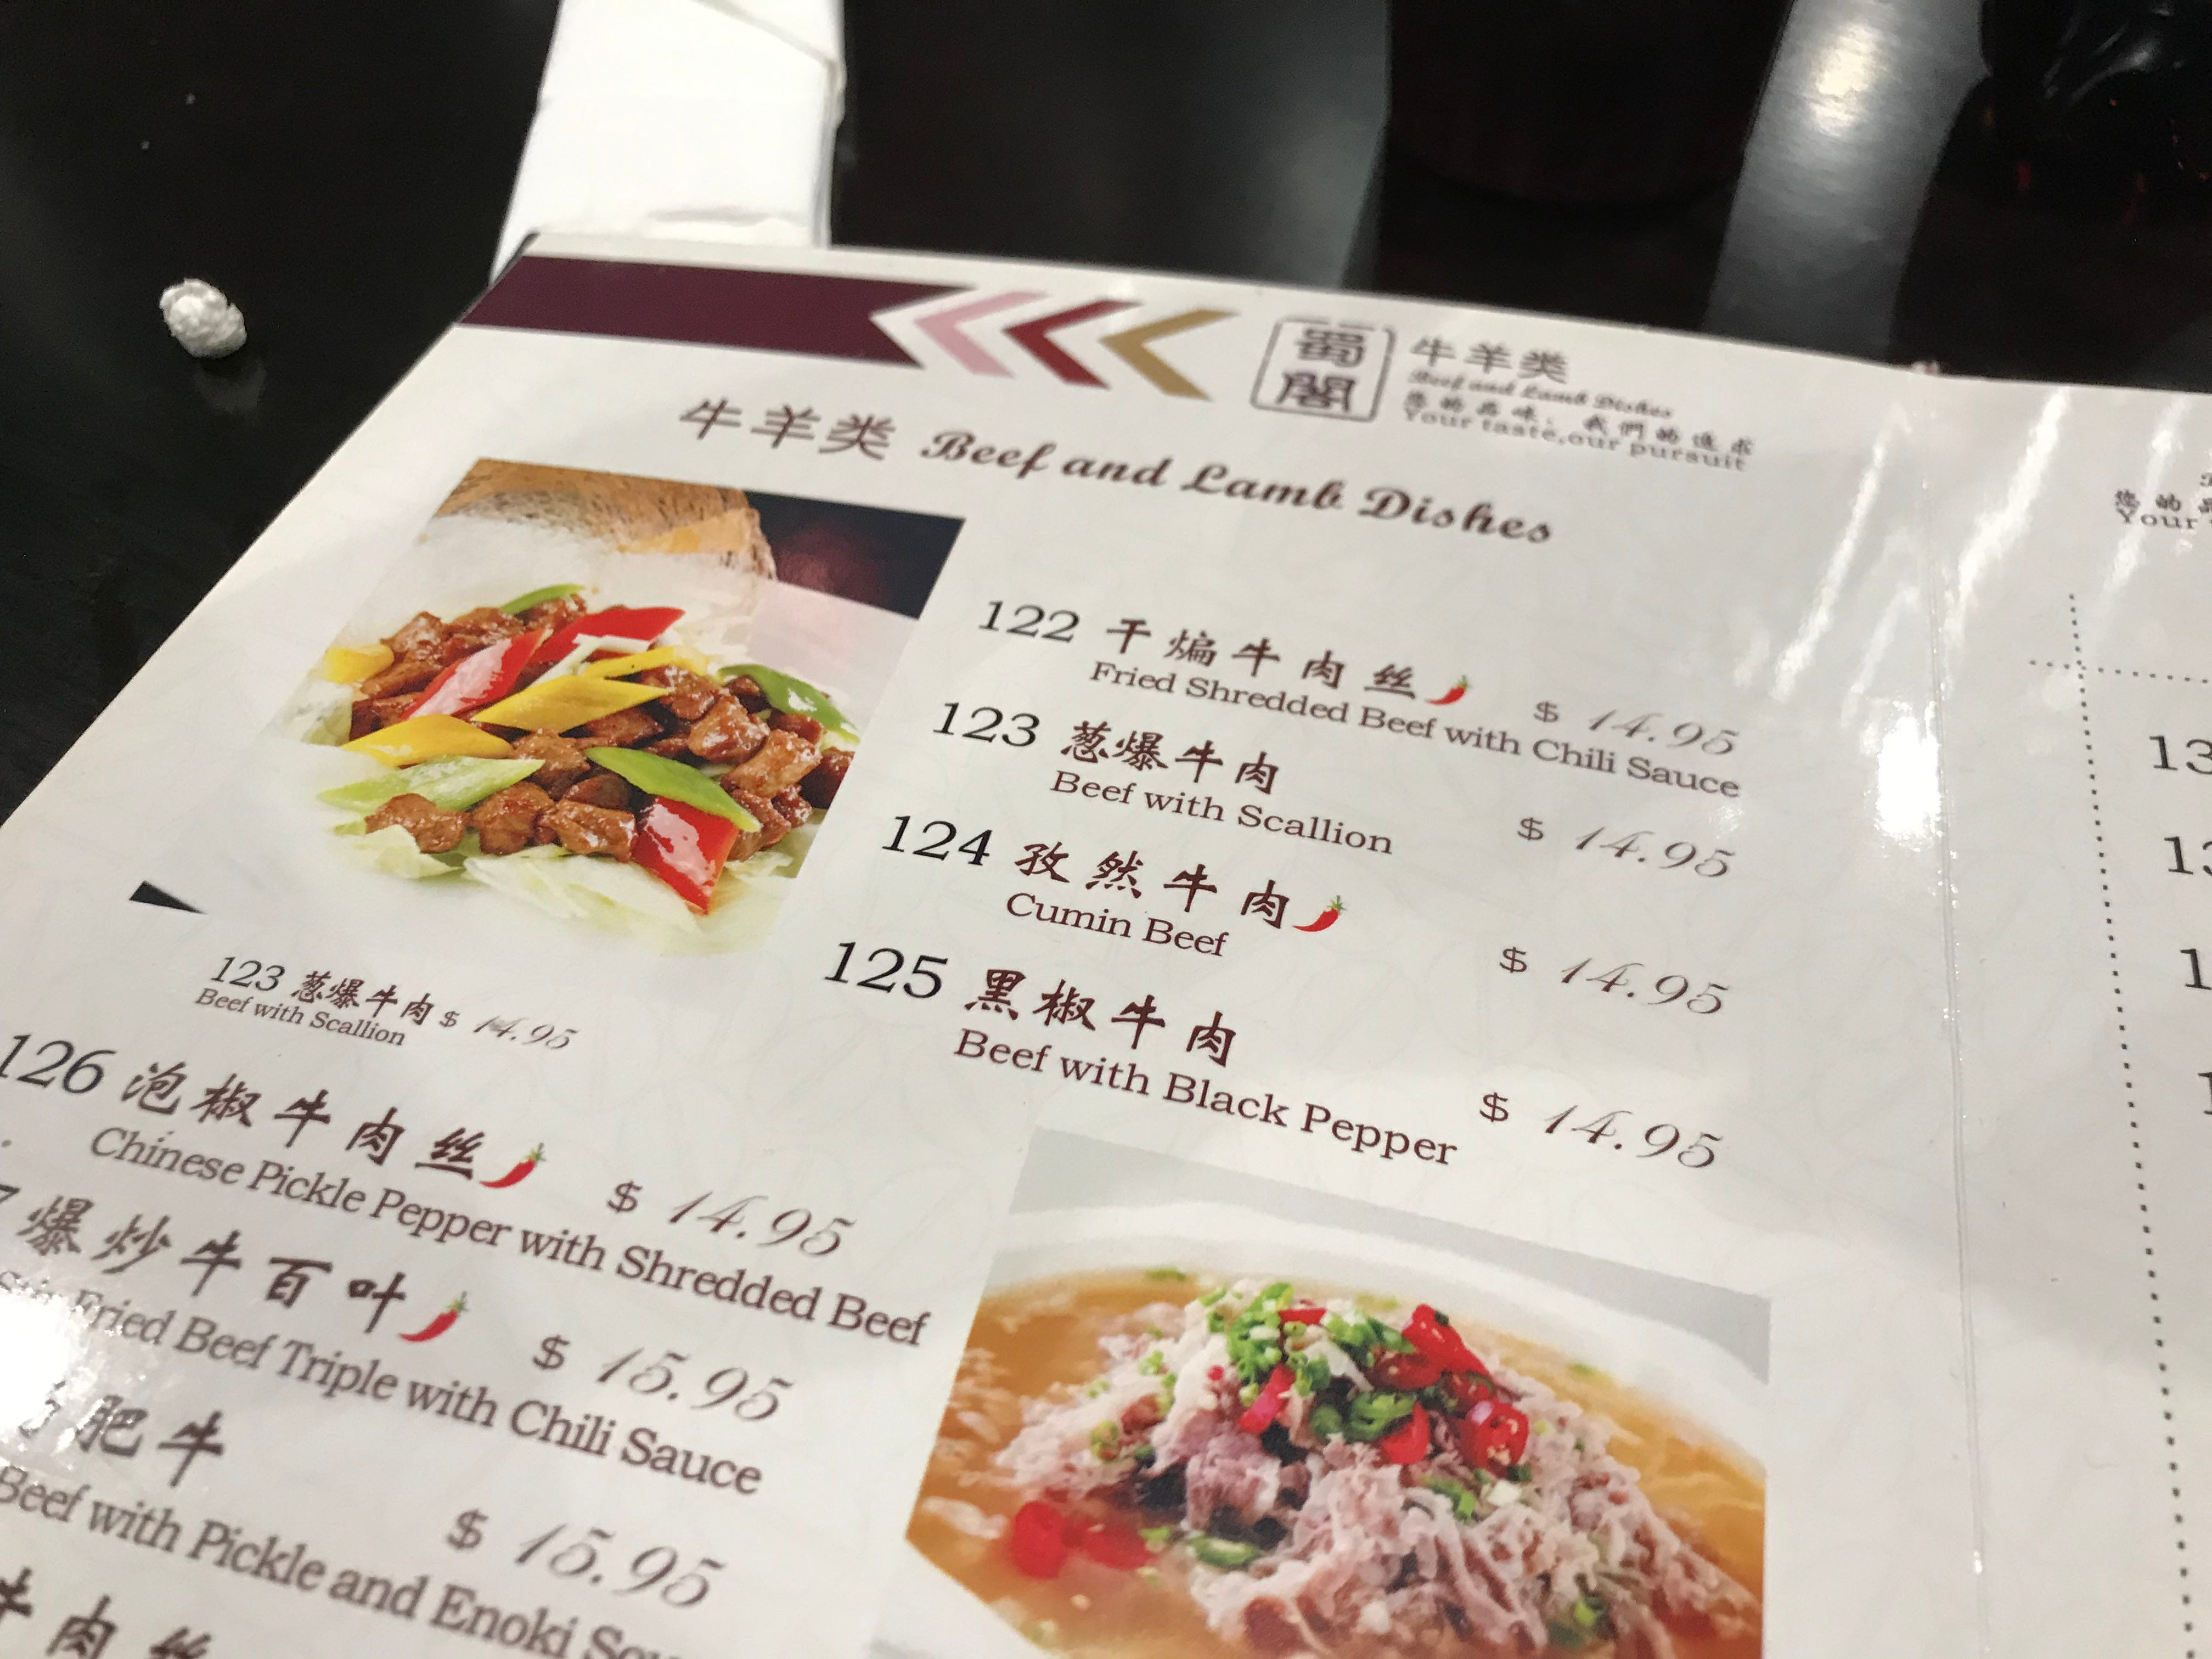 Shu Ge's menu is like a small book. The waitress suggested we order entrees from the last page, which are more commonly ordered. We opted for order other dinners. Be warned, though, the meals look nothing like the photographs inside the menu.